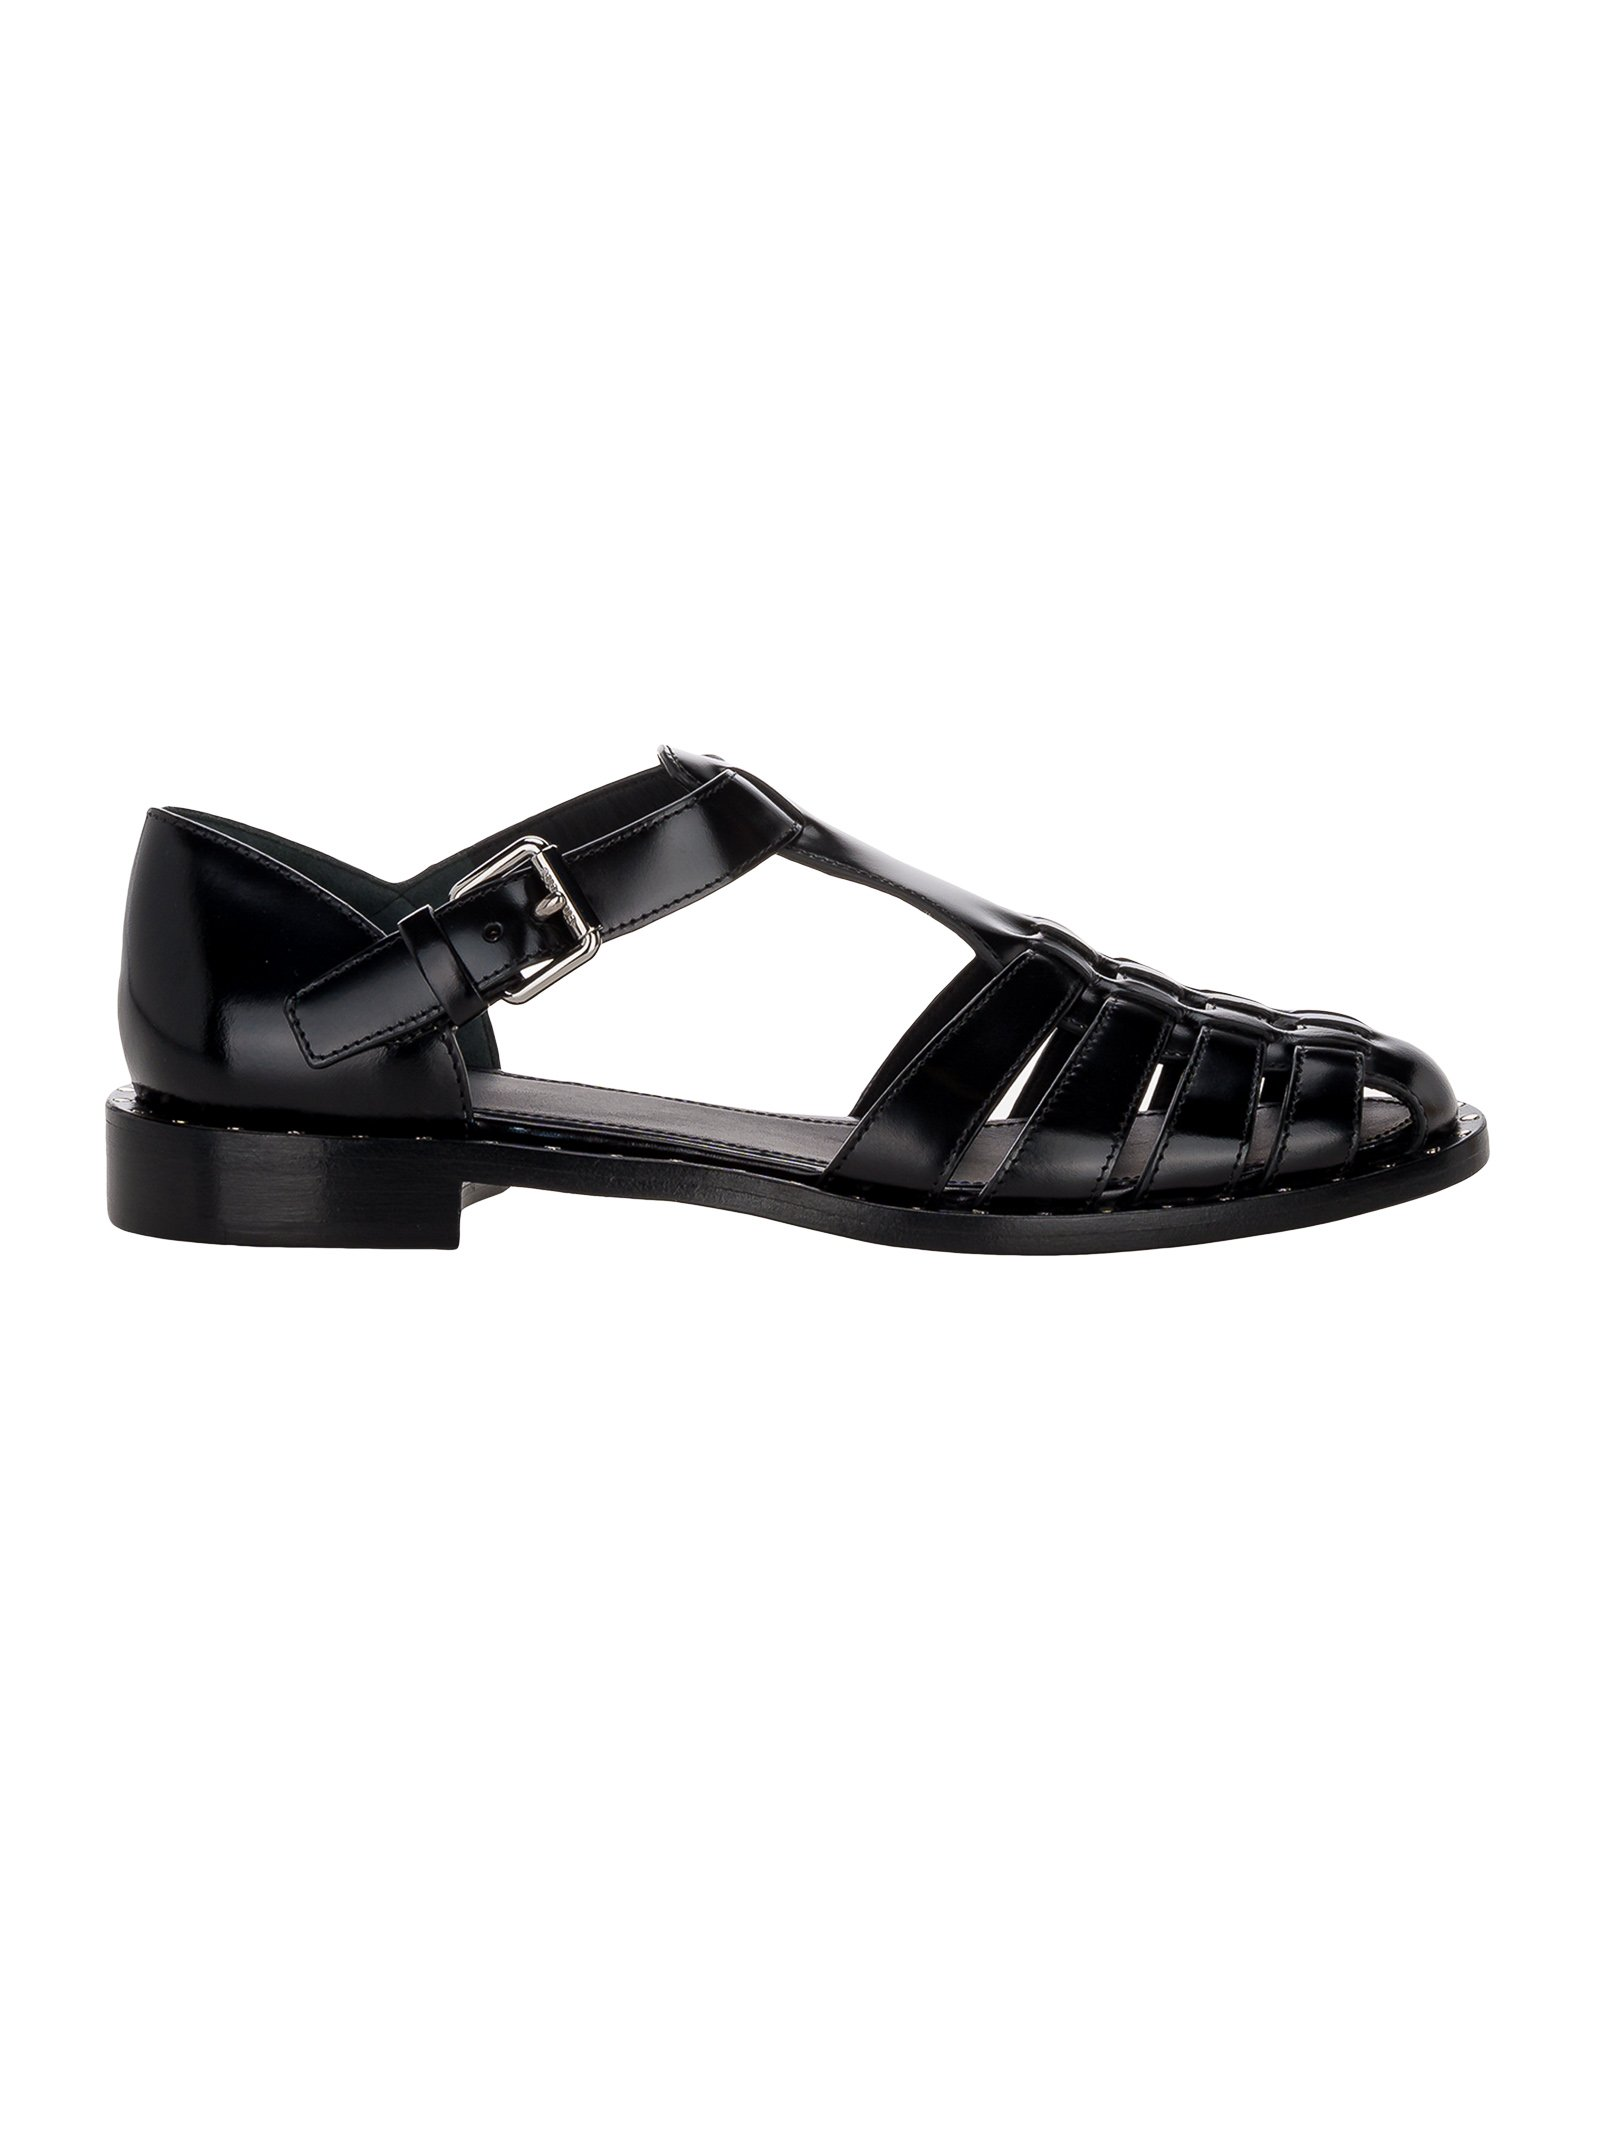 Church's Leathers KELSEY SANDALS